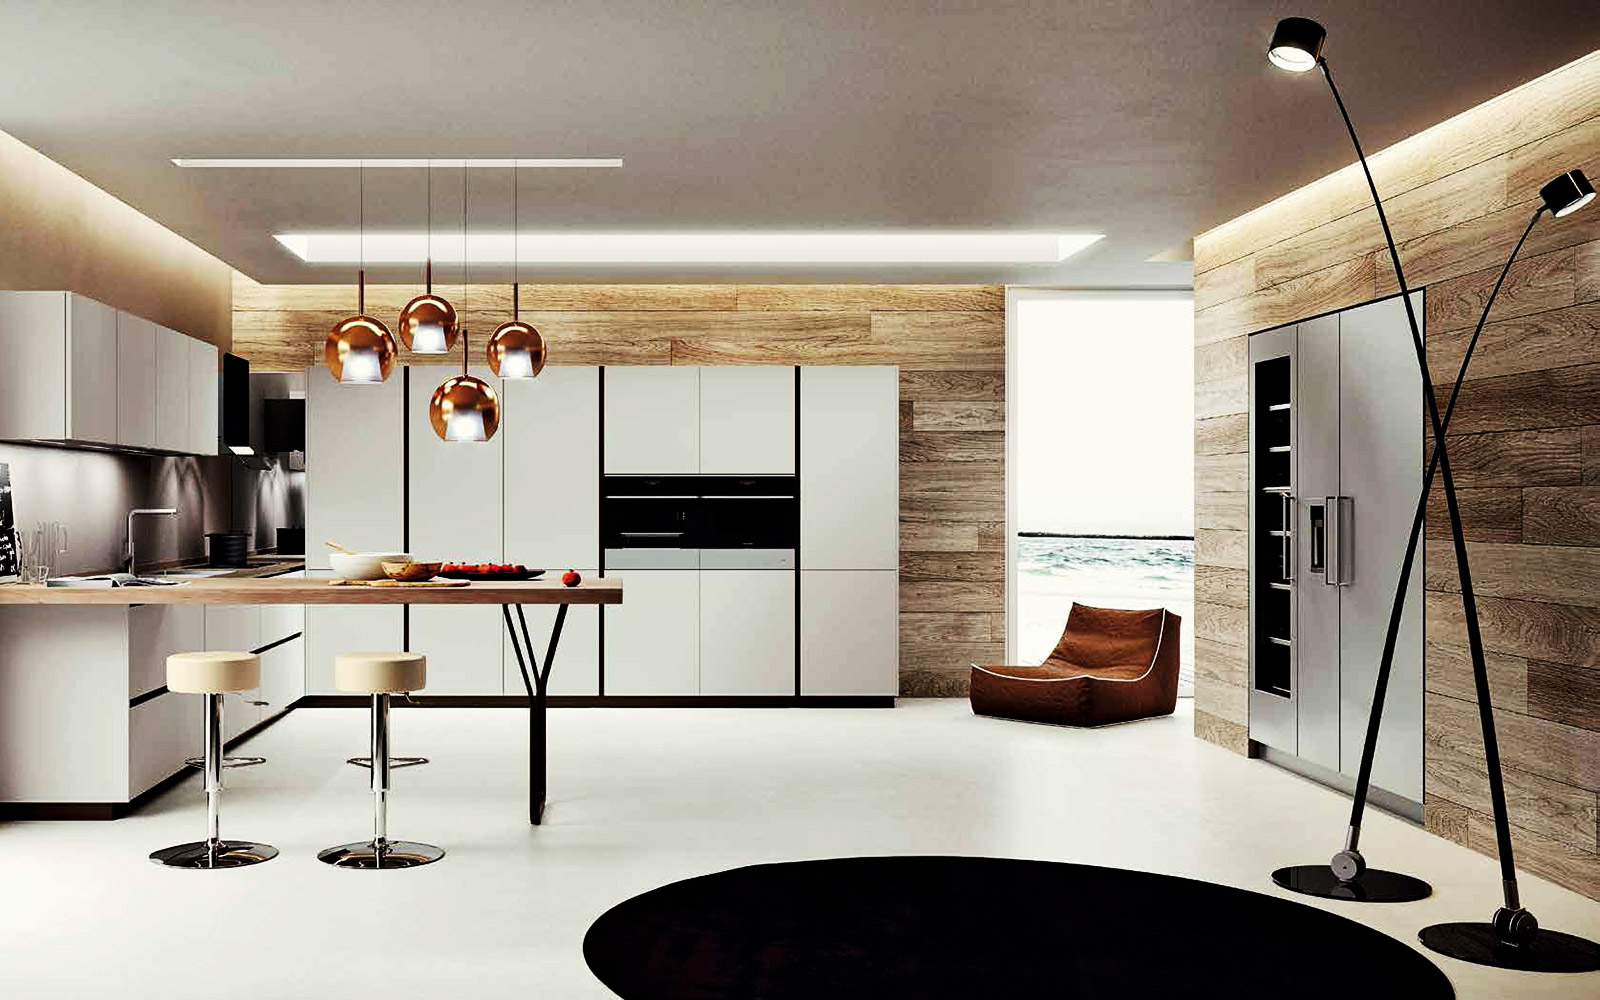 Home for Cucine di design